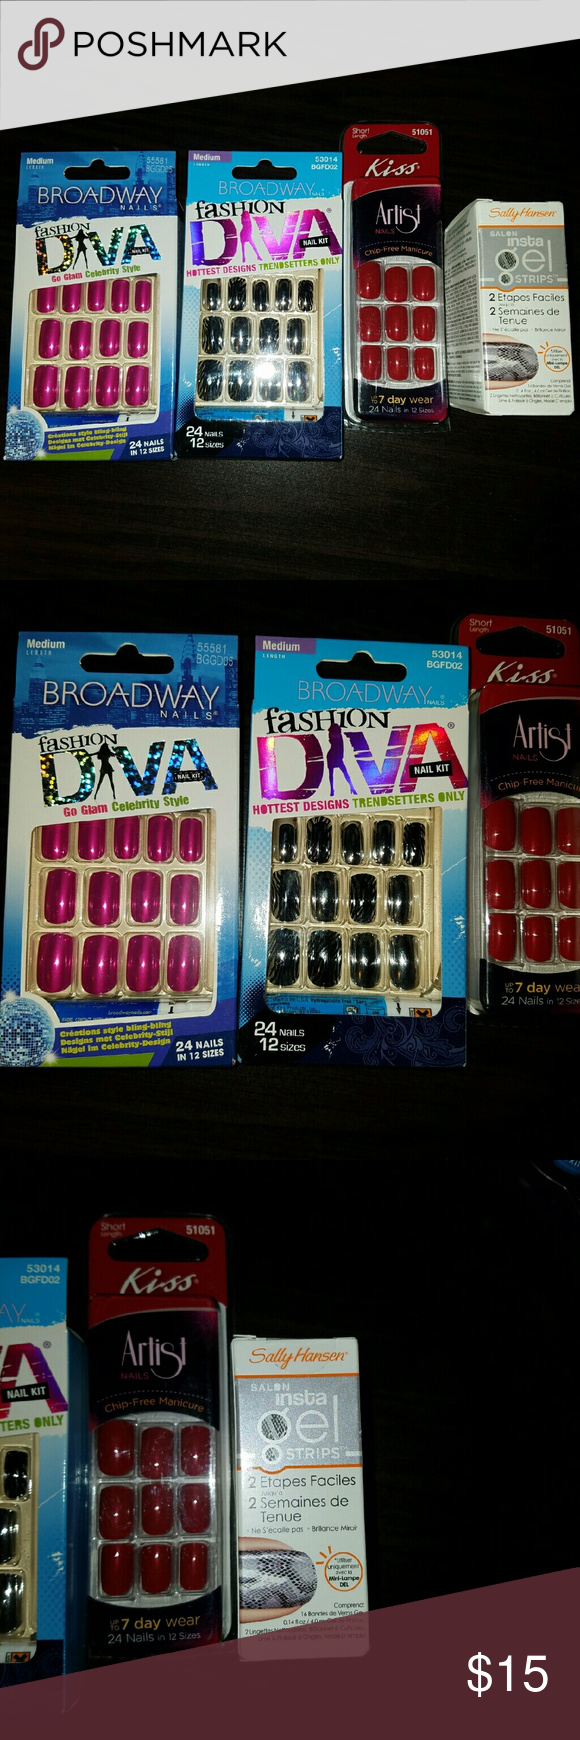 Variety nail bundle 2 packs of Broadway Fashion diva nails 1 pack of ...